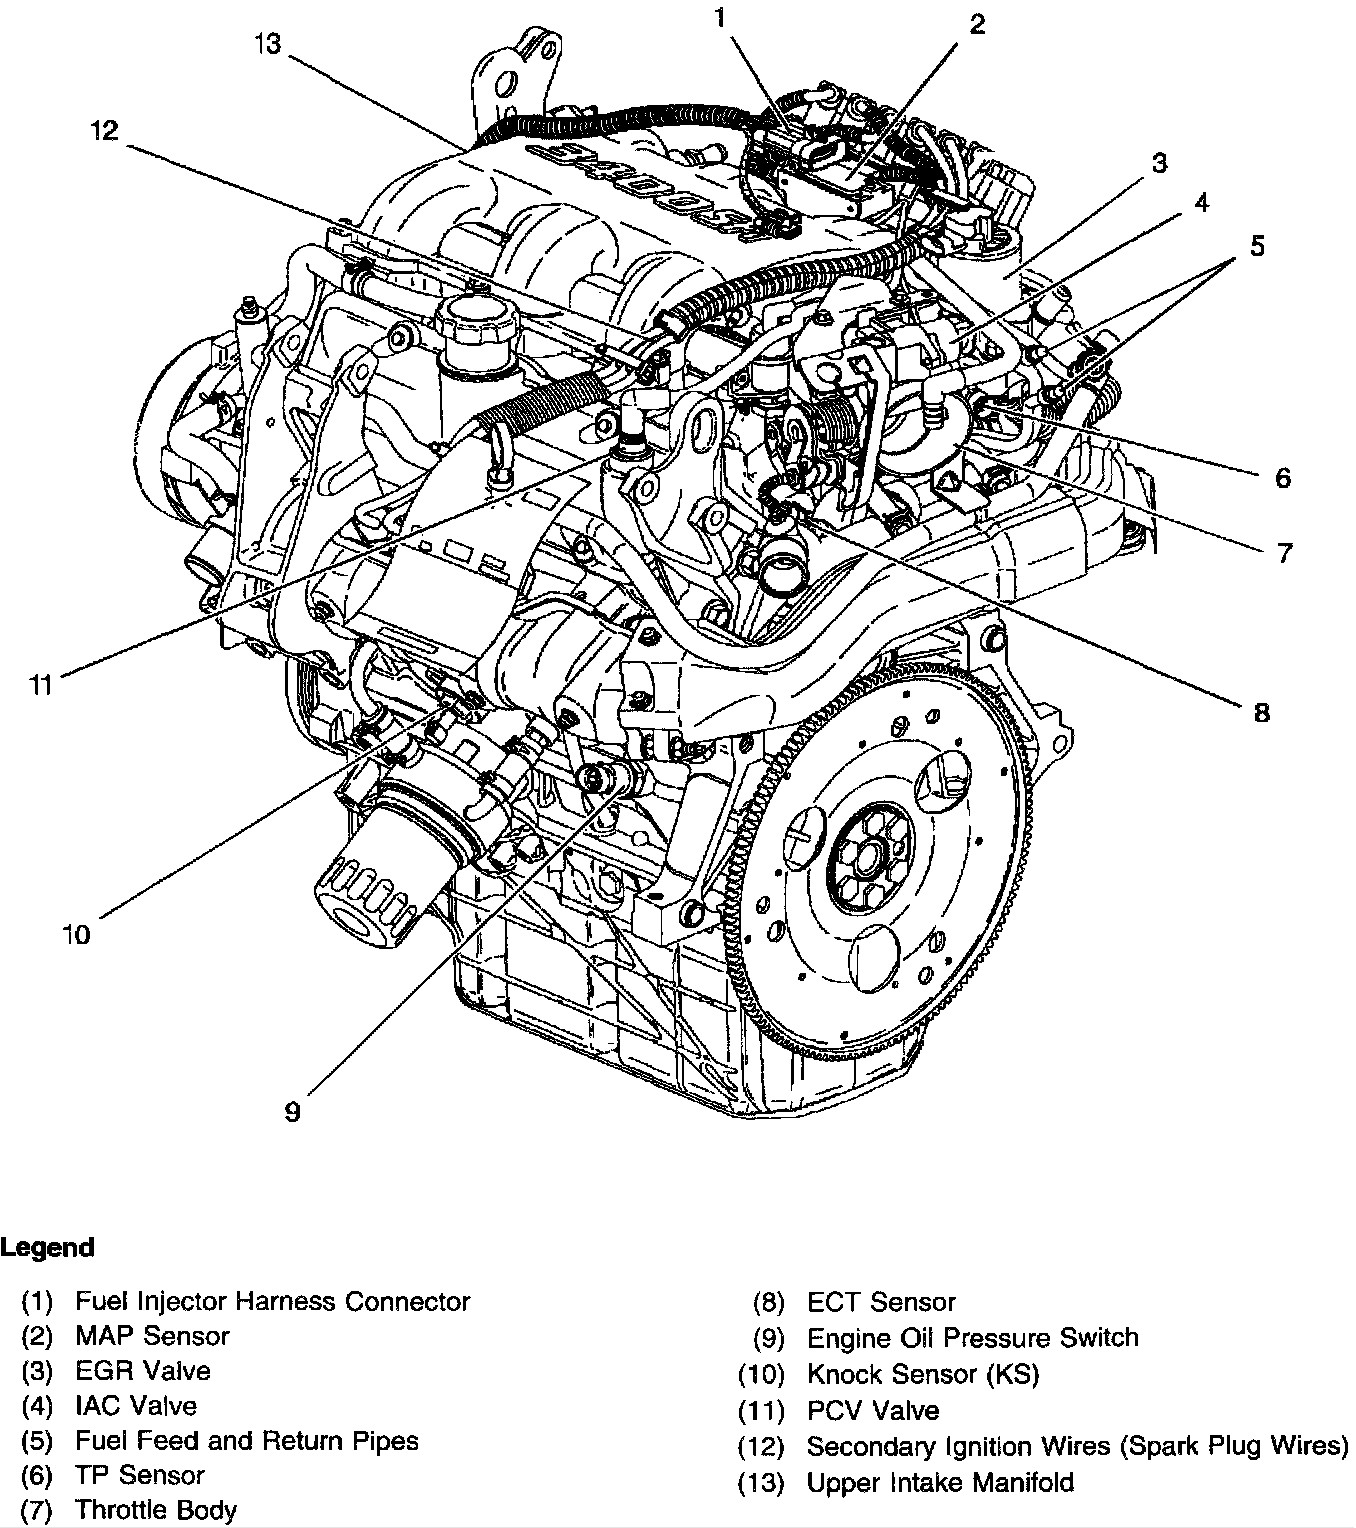 v6 vortec engine diagram ect